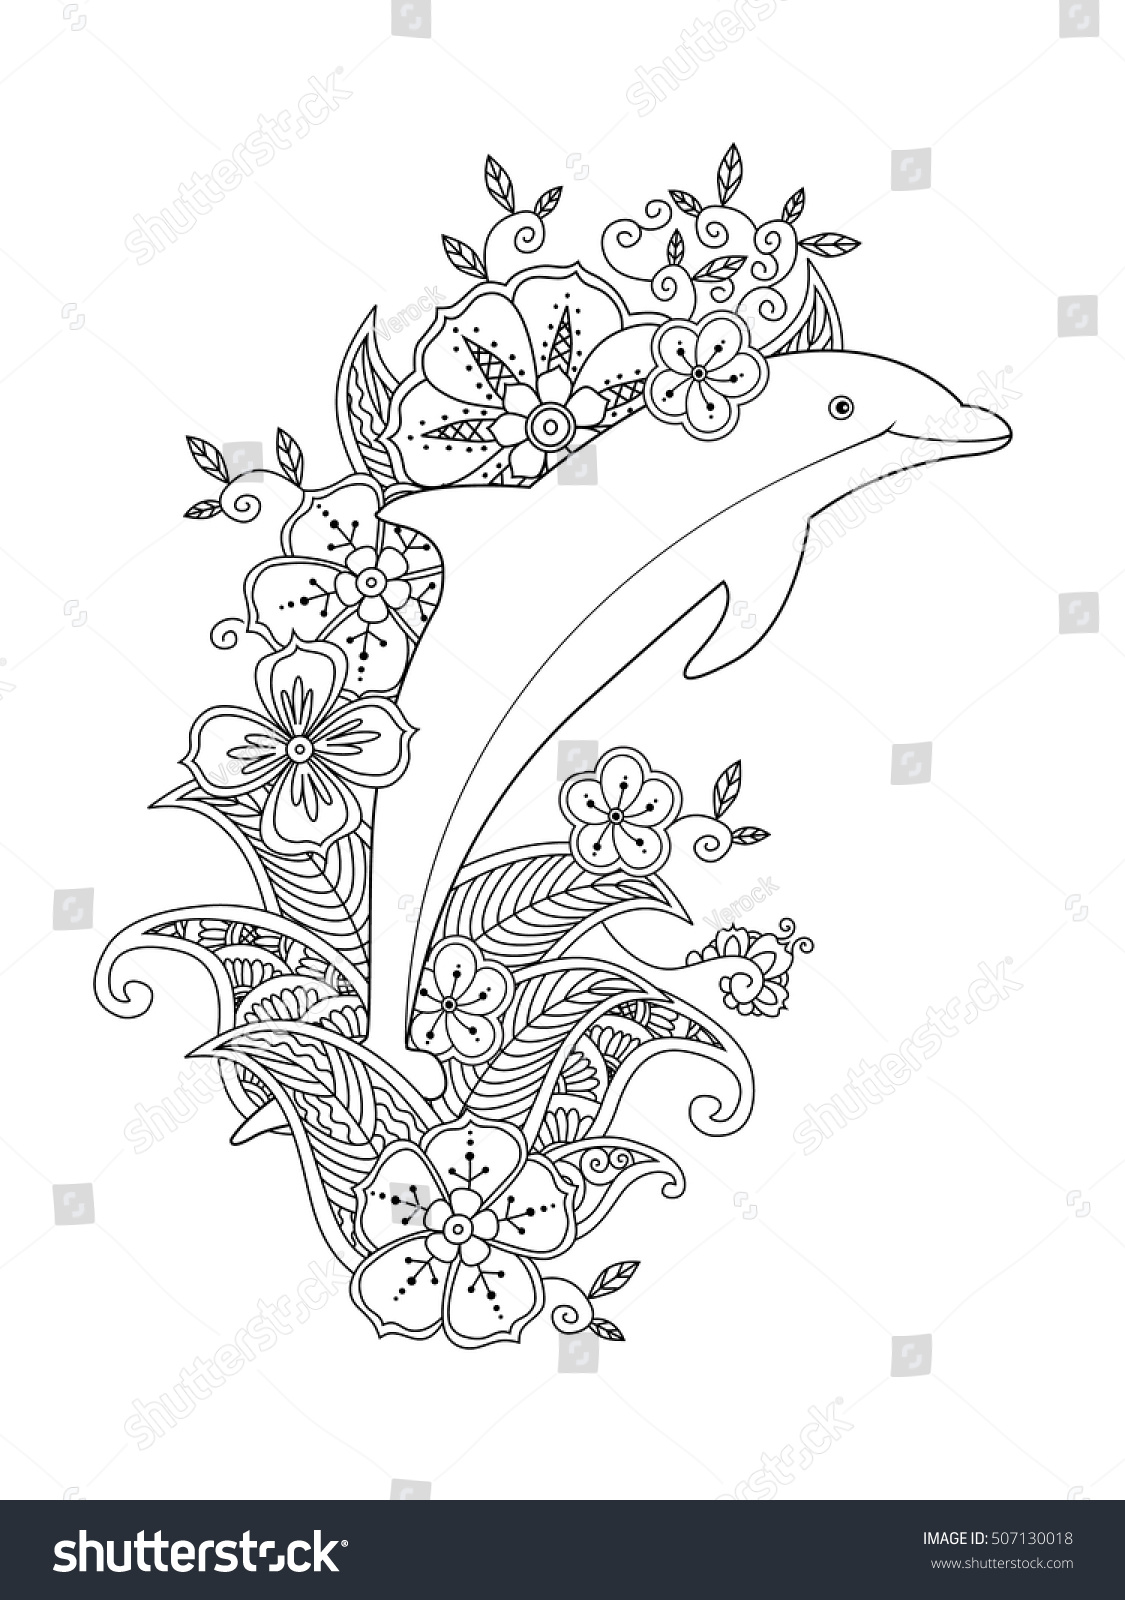 Coloring Page One Jumping Dolphin On Stock Vector 507130018 ...